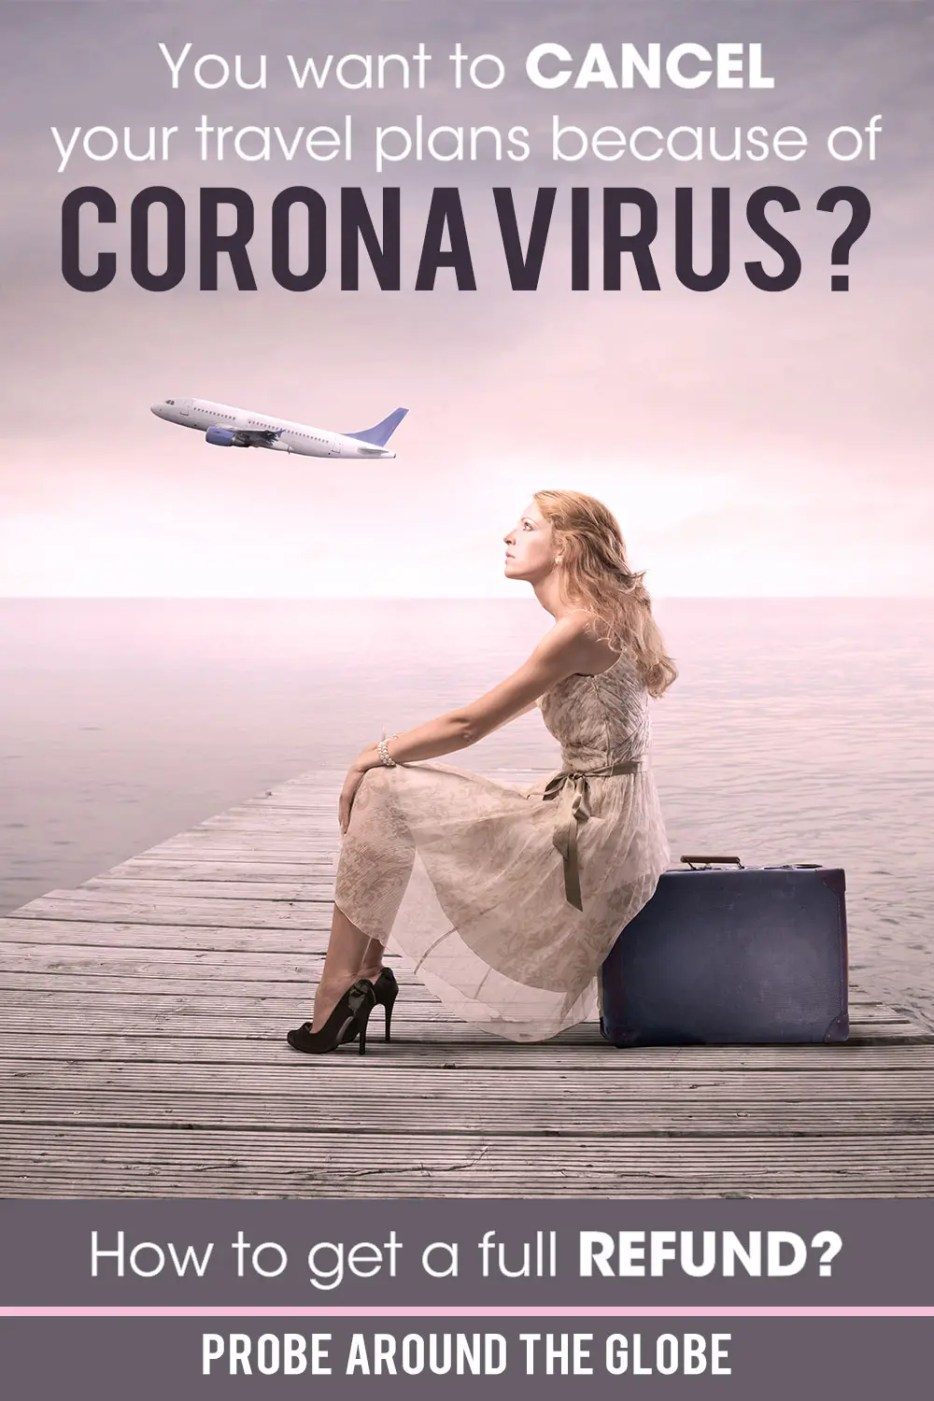 If you want to cancel your travel plans because of the Coronavirus Covid-19, I can help you with practical tips to get a full refund of your travel expenses